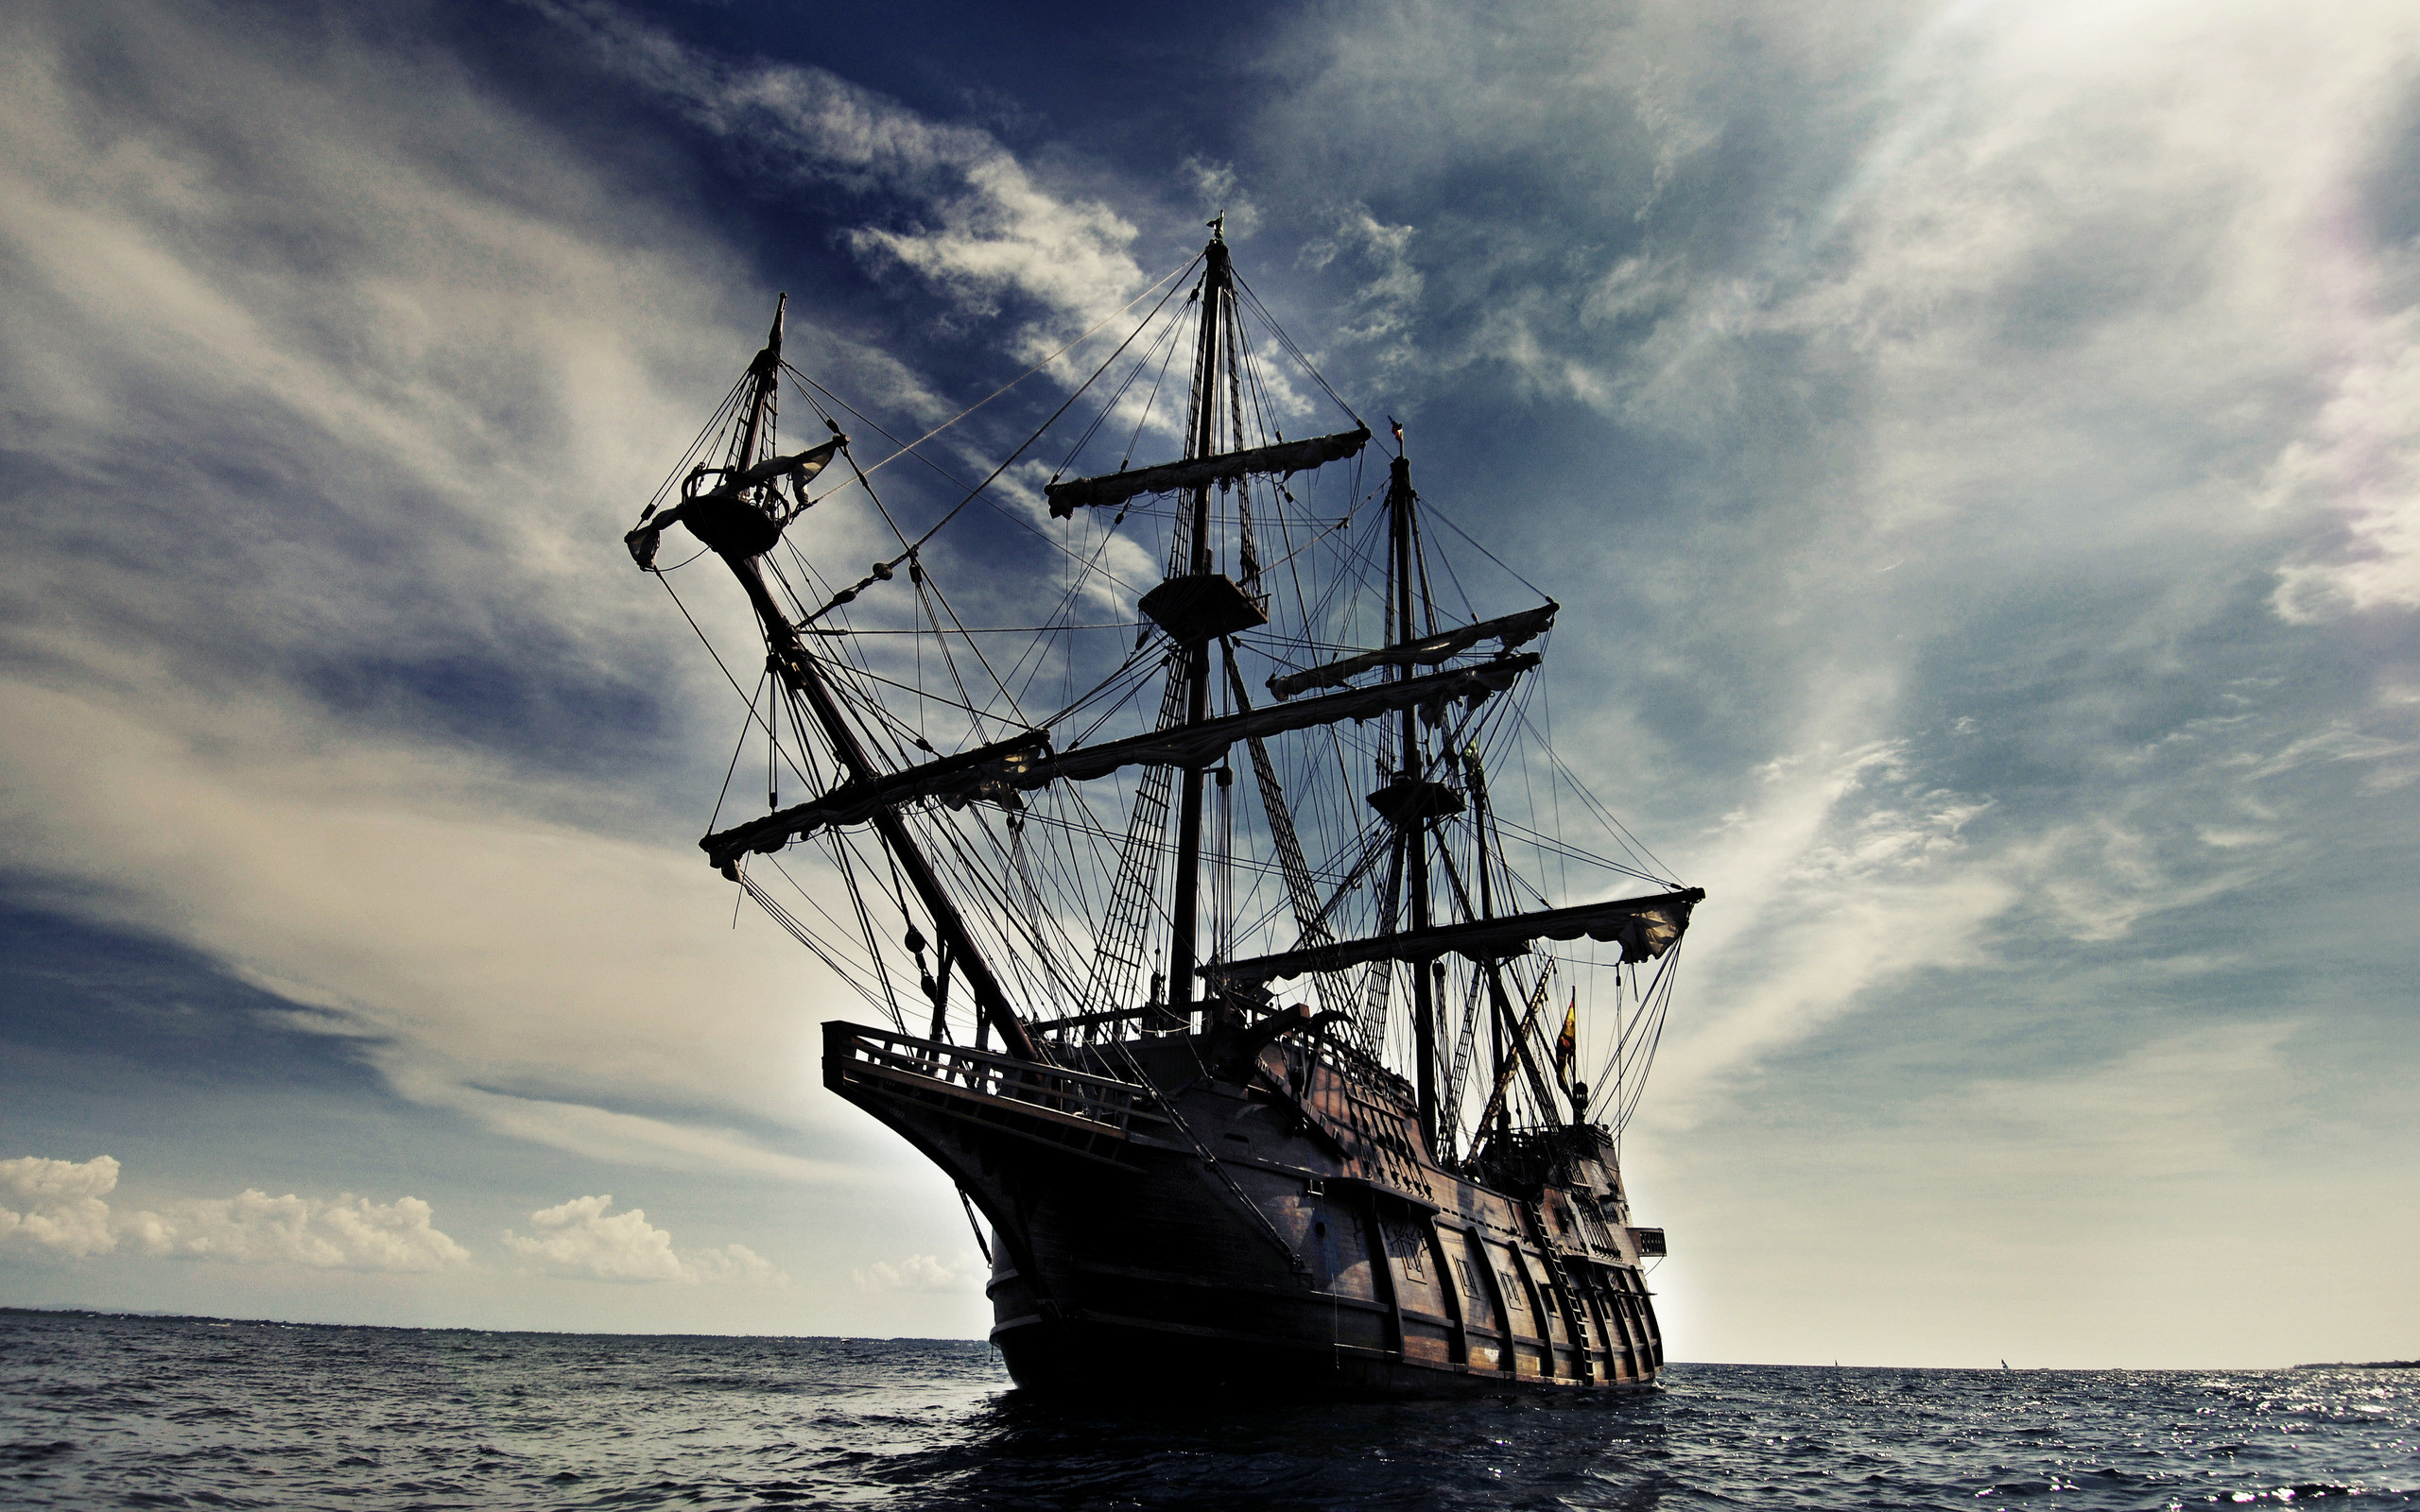 The Black Pearl Wallpaper 74 Images